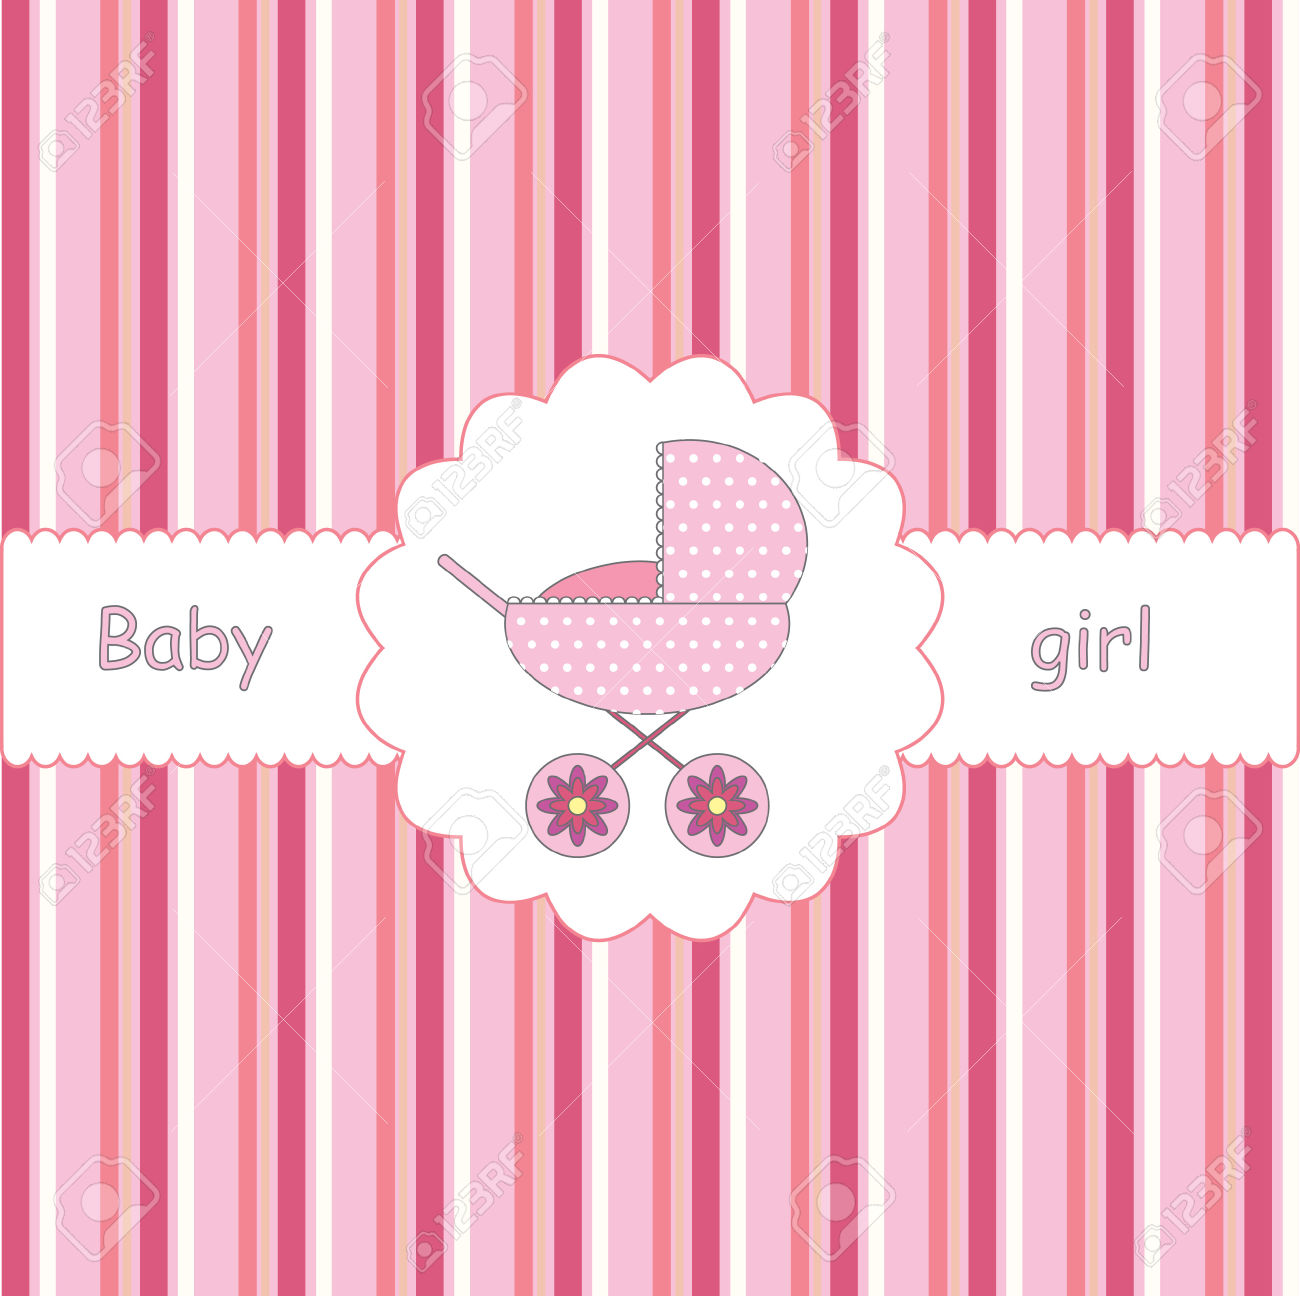 Baby Girl Wallpaper Pink Download Baby Shower Wallpaper Free Gallery